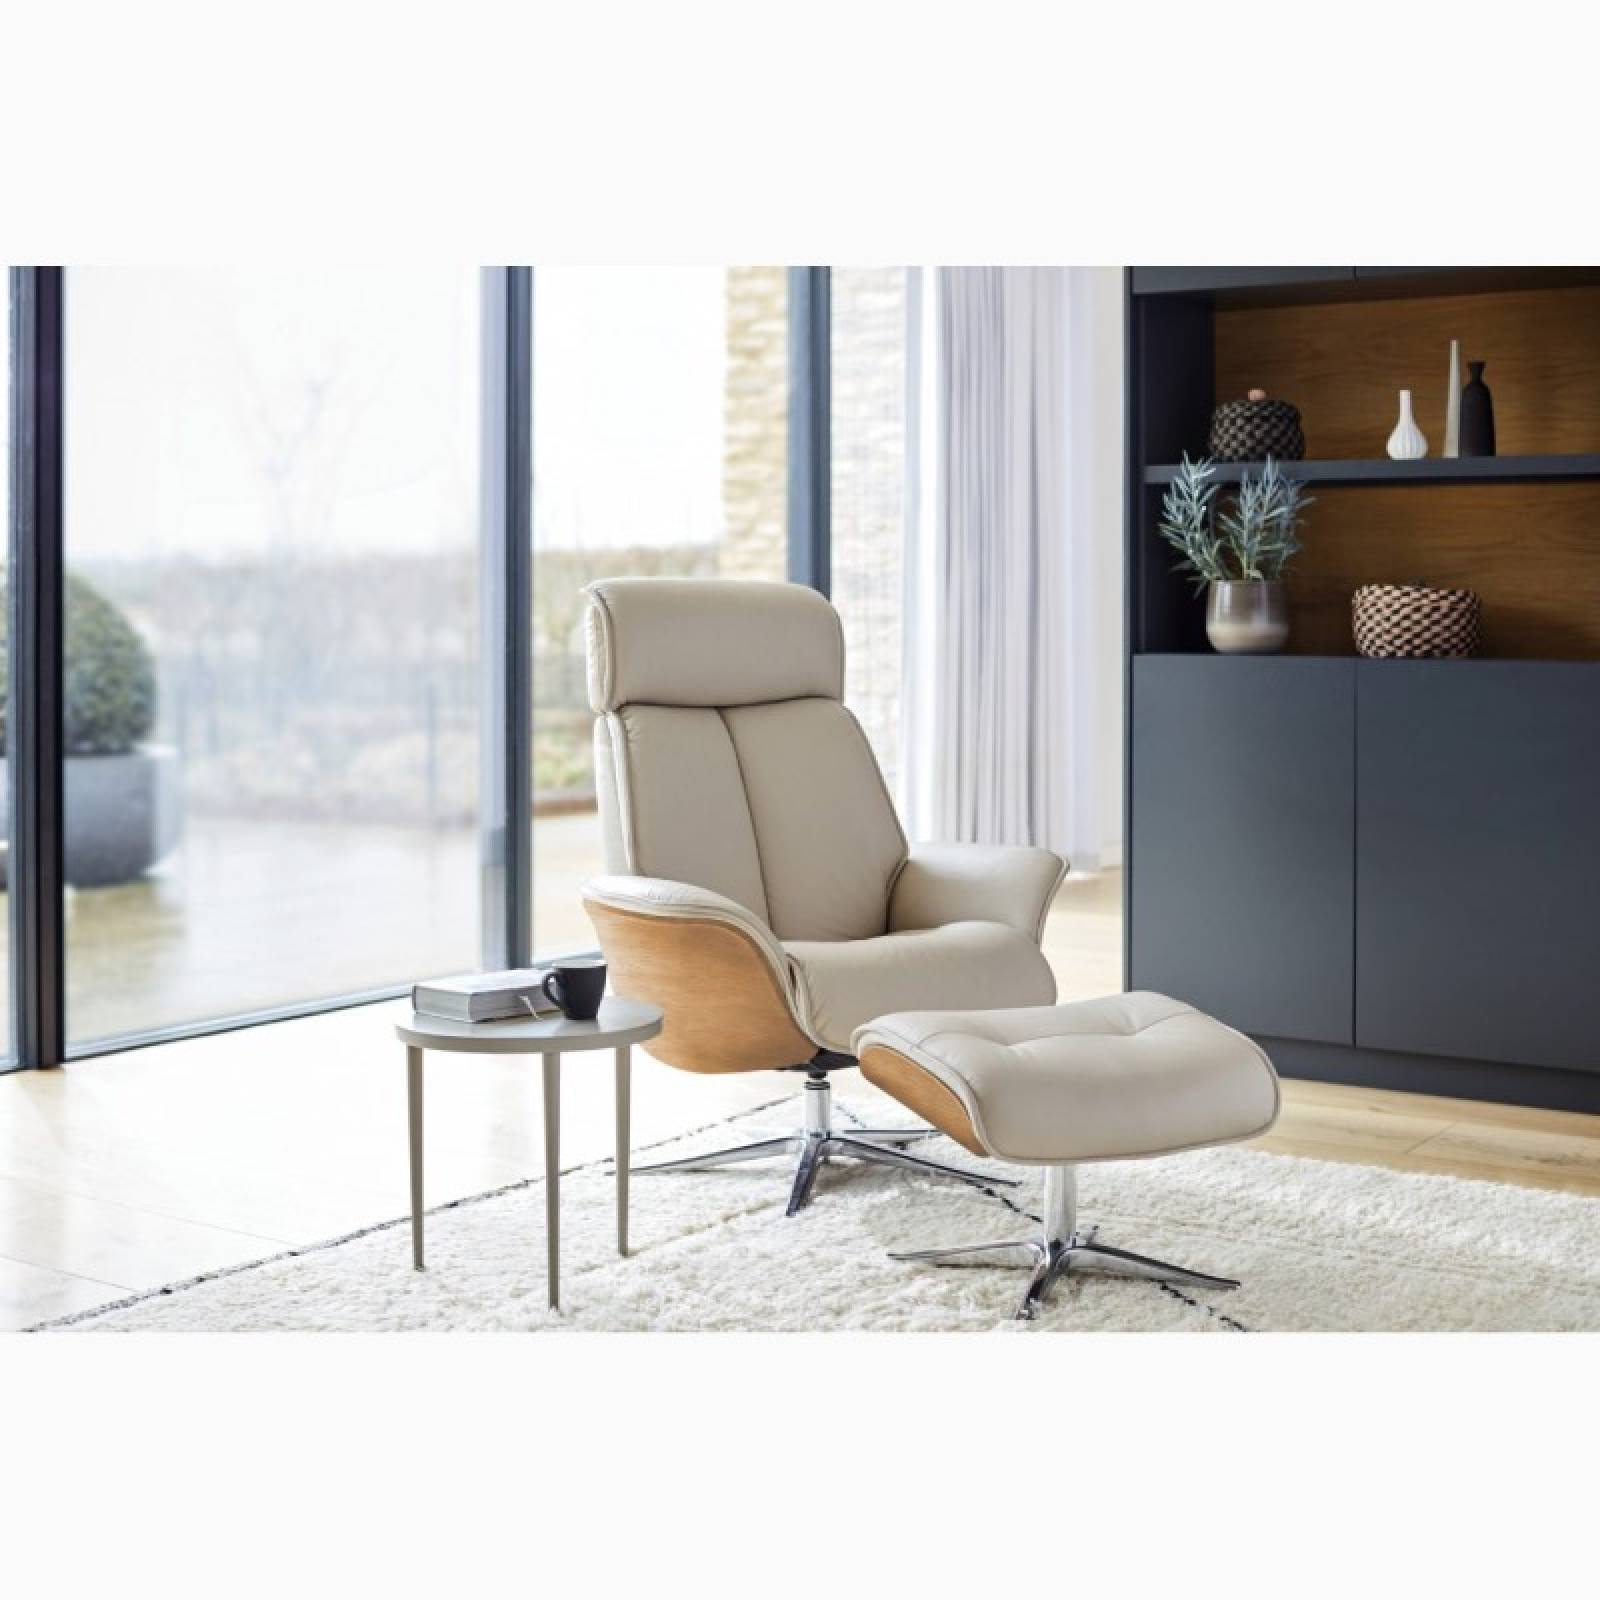 G Plan - The Lund - Recliner Armchair & Footstool - Wood Side thumbnails